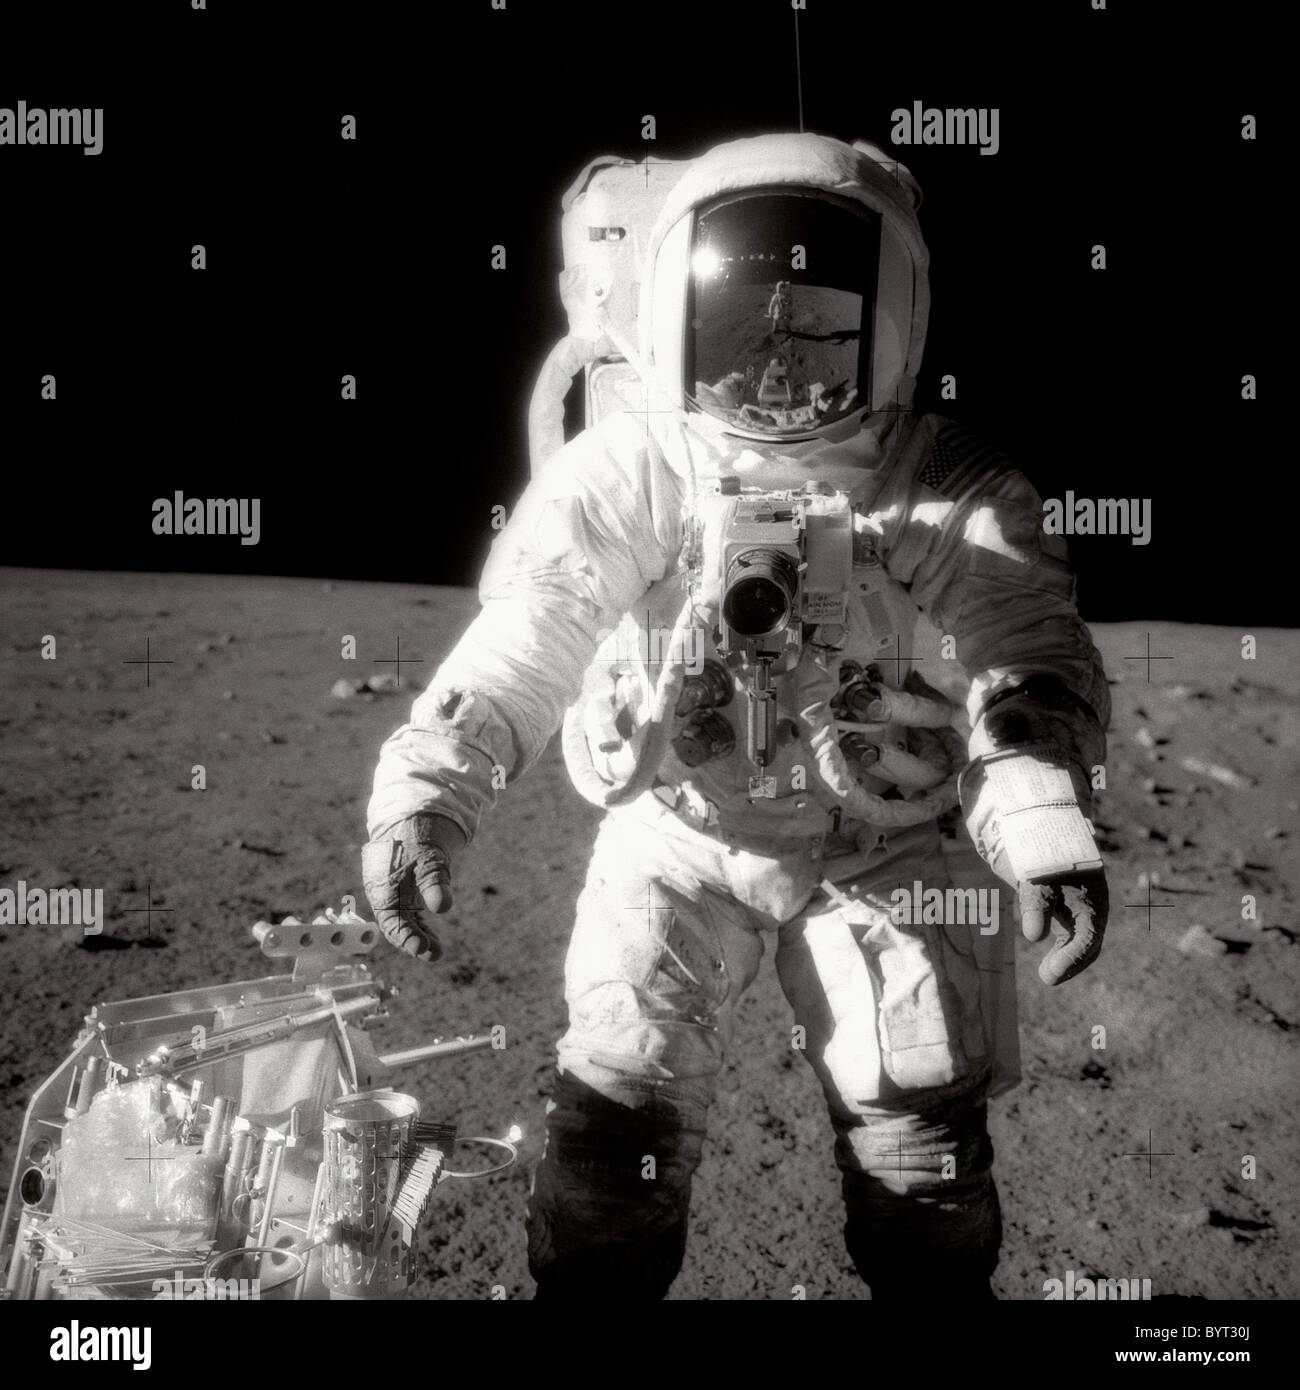 Apollo 12 Astronaut Alan L. Bean on the moon. - Stock Image